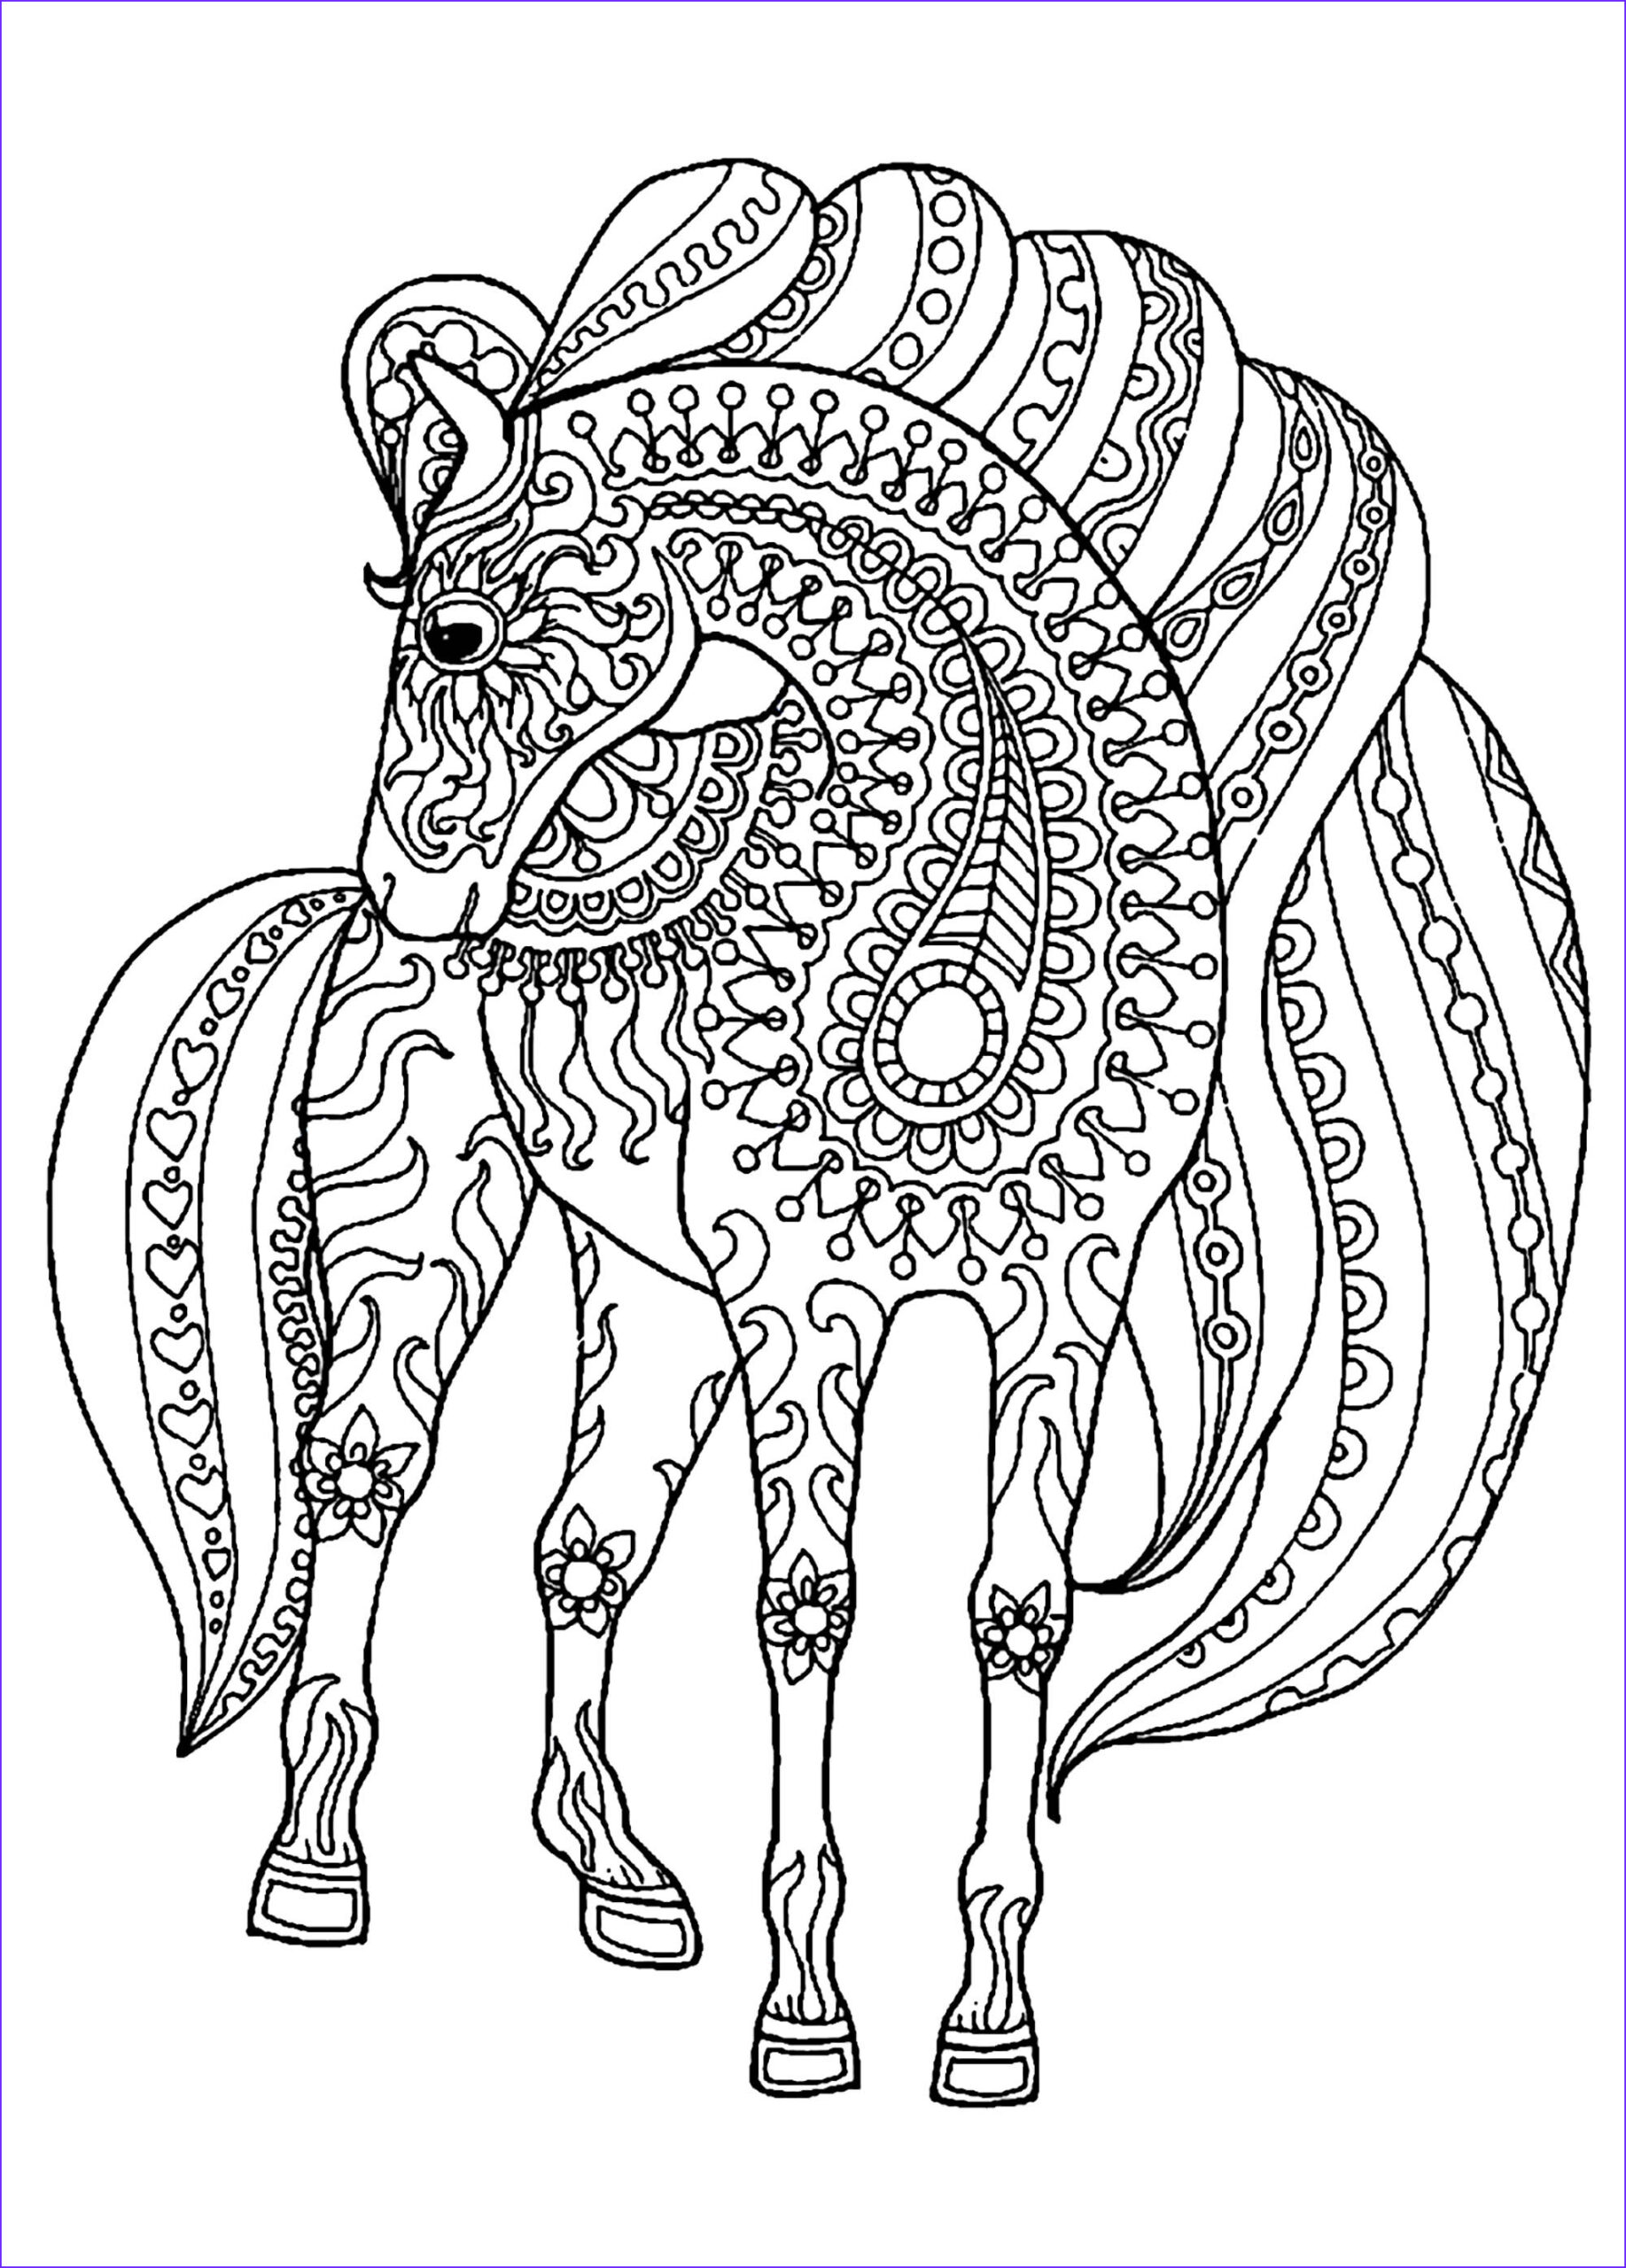 image=horses coloring horse simple zentangle patterns 1